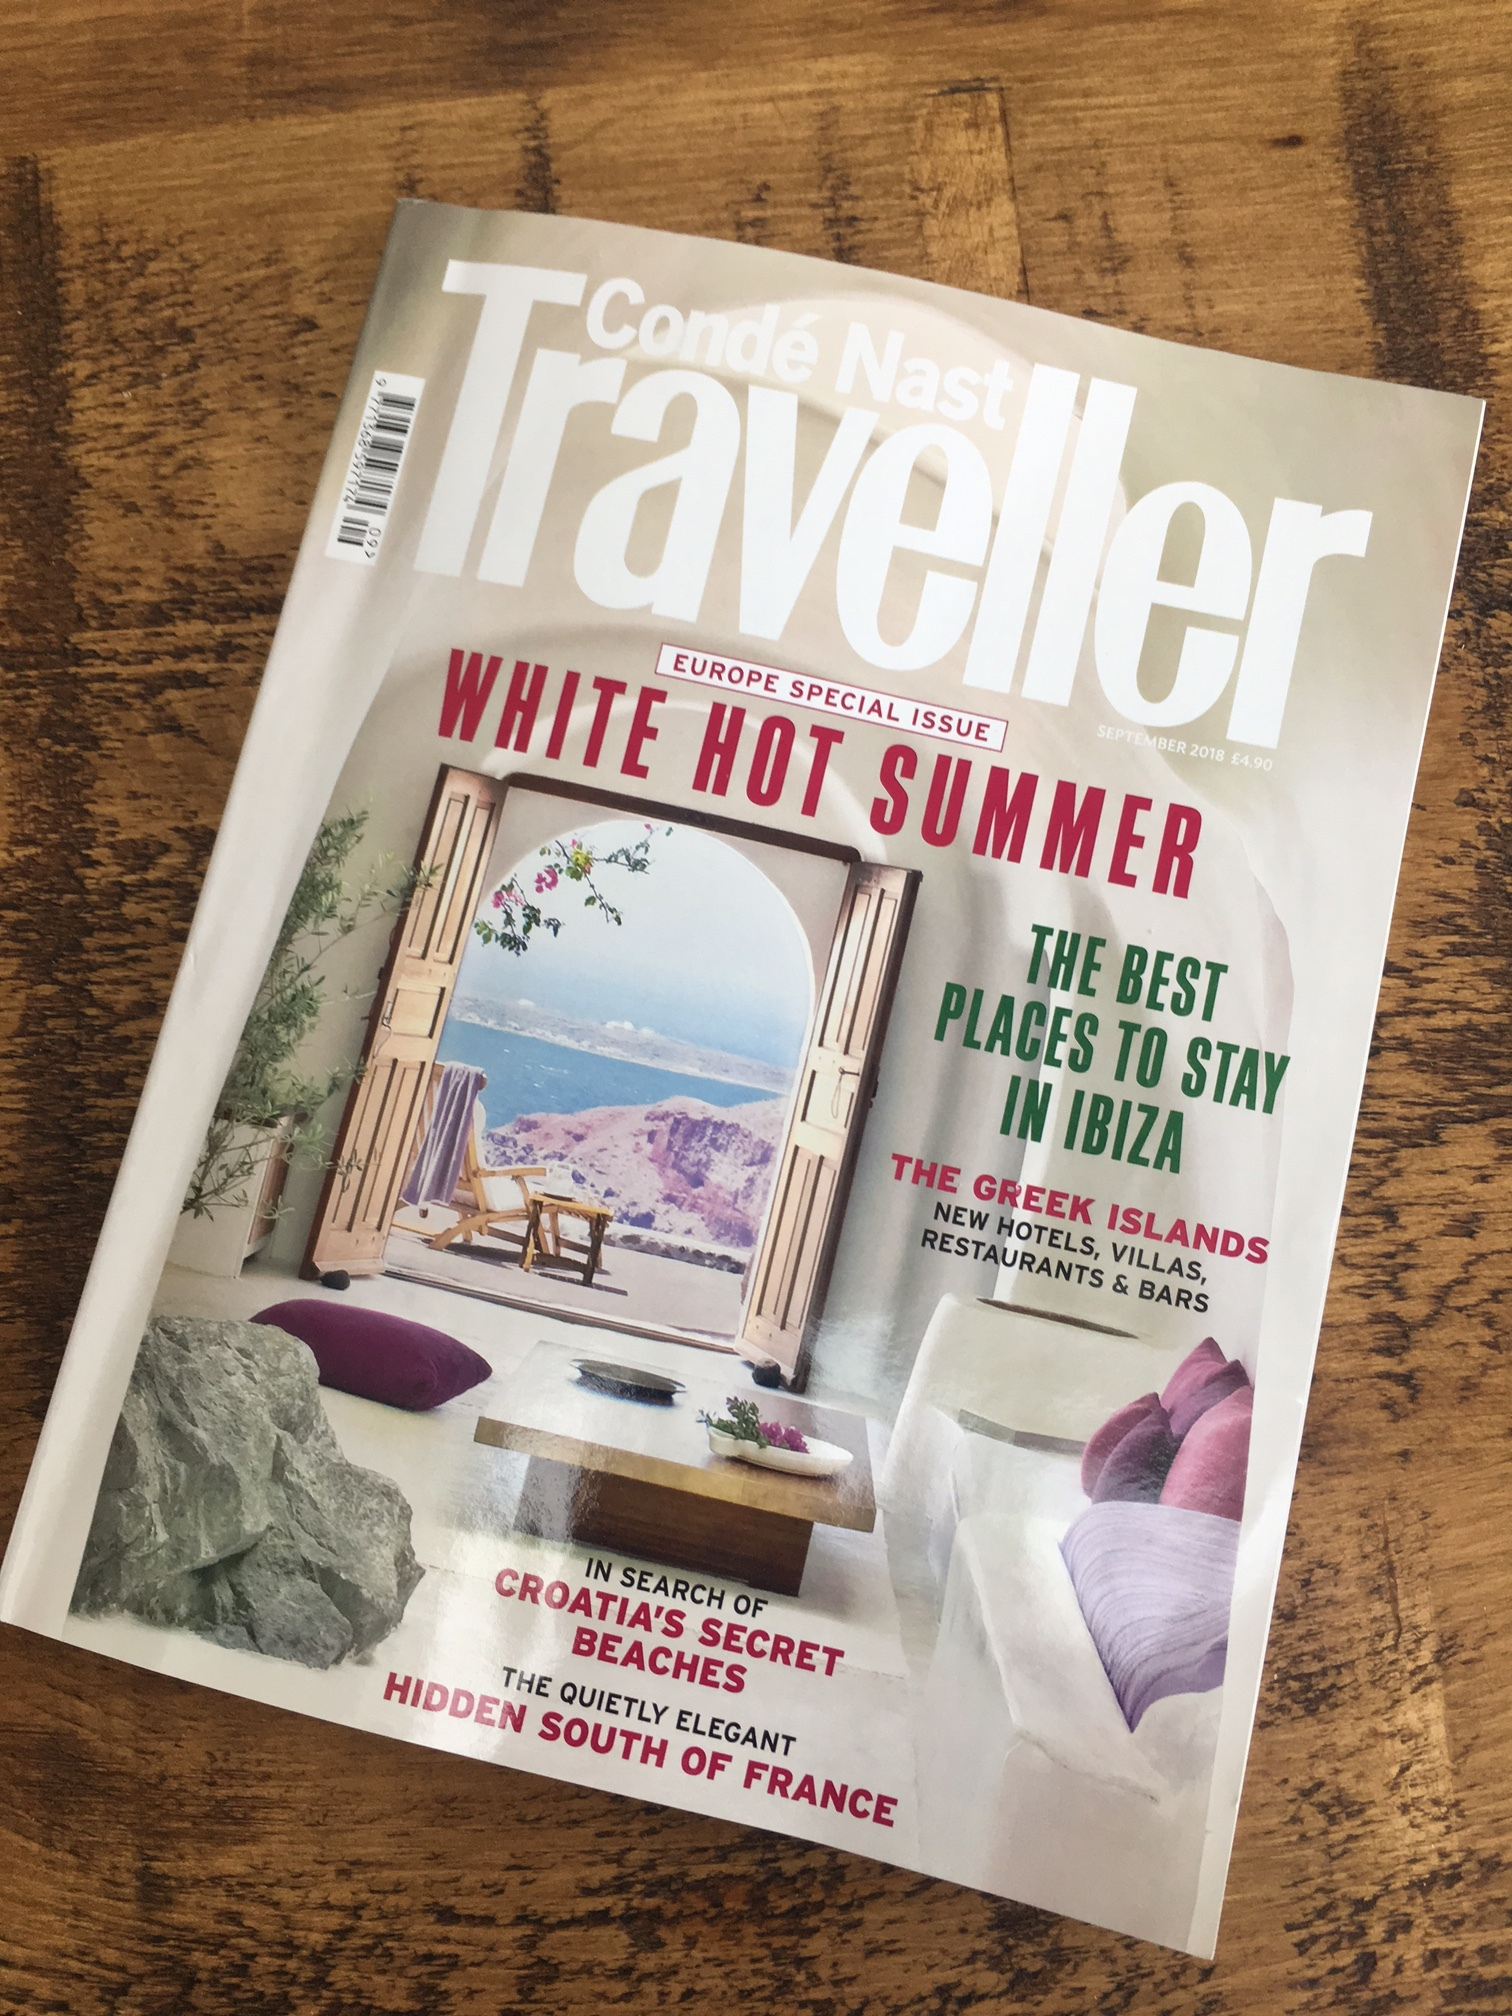 Villa Angelo is the place to stay in Istria, according toCondé Nast Traveller, September 2018. -